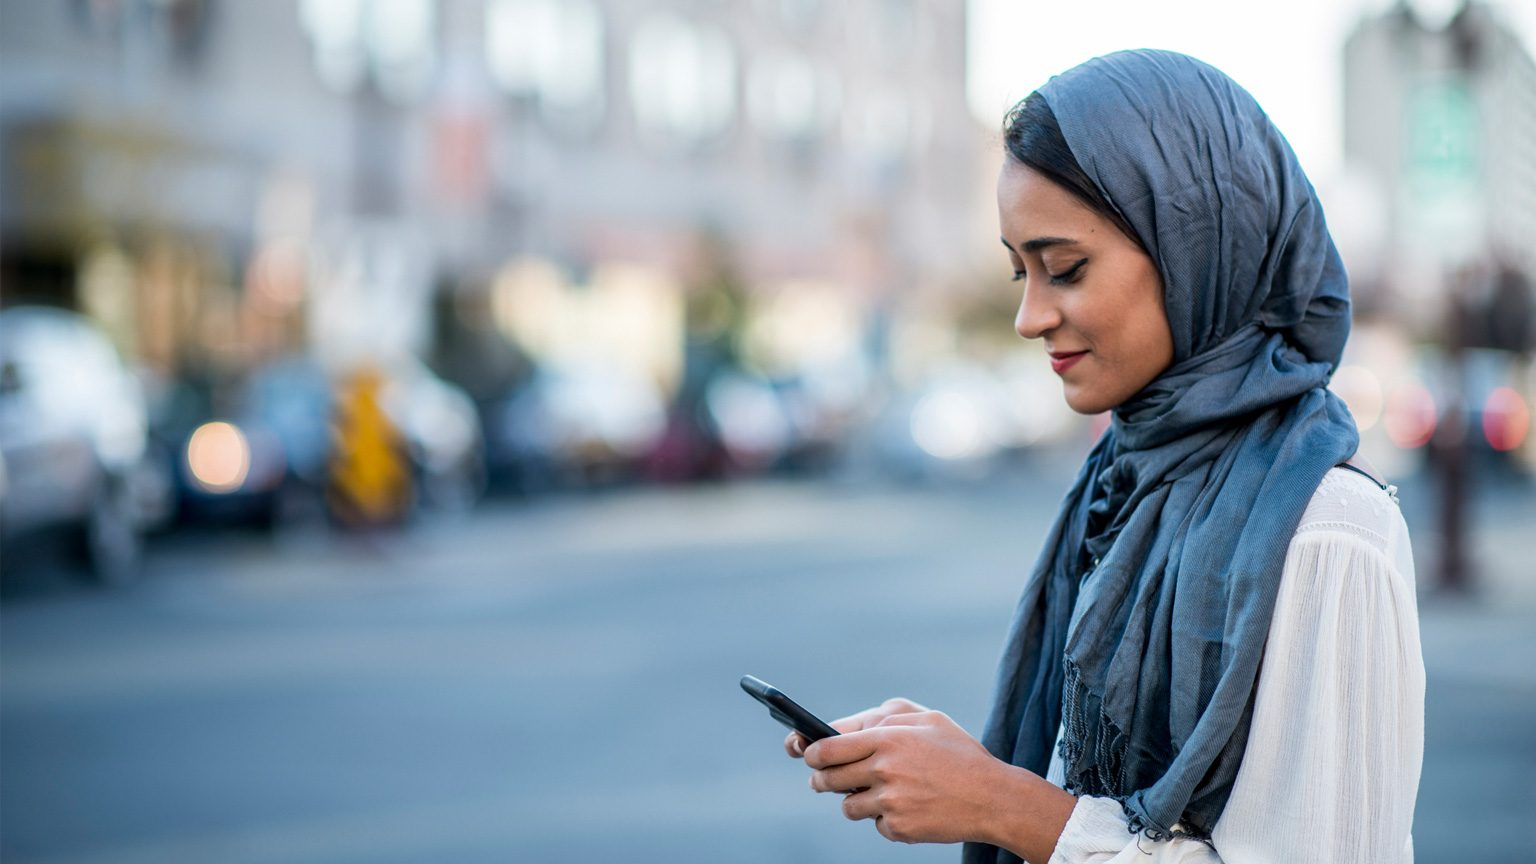 Lady in hijab looking at mobile phone